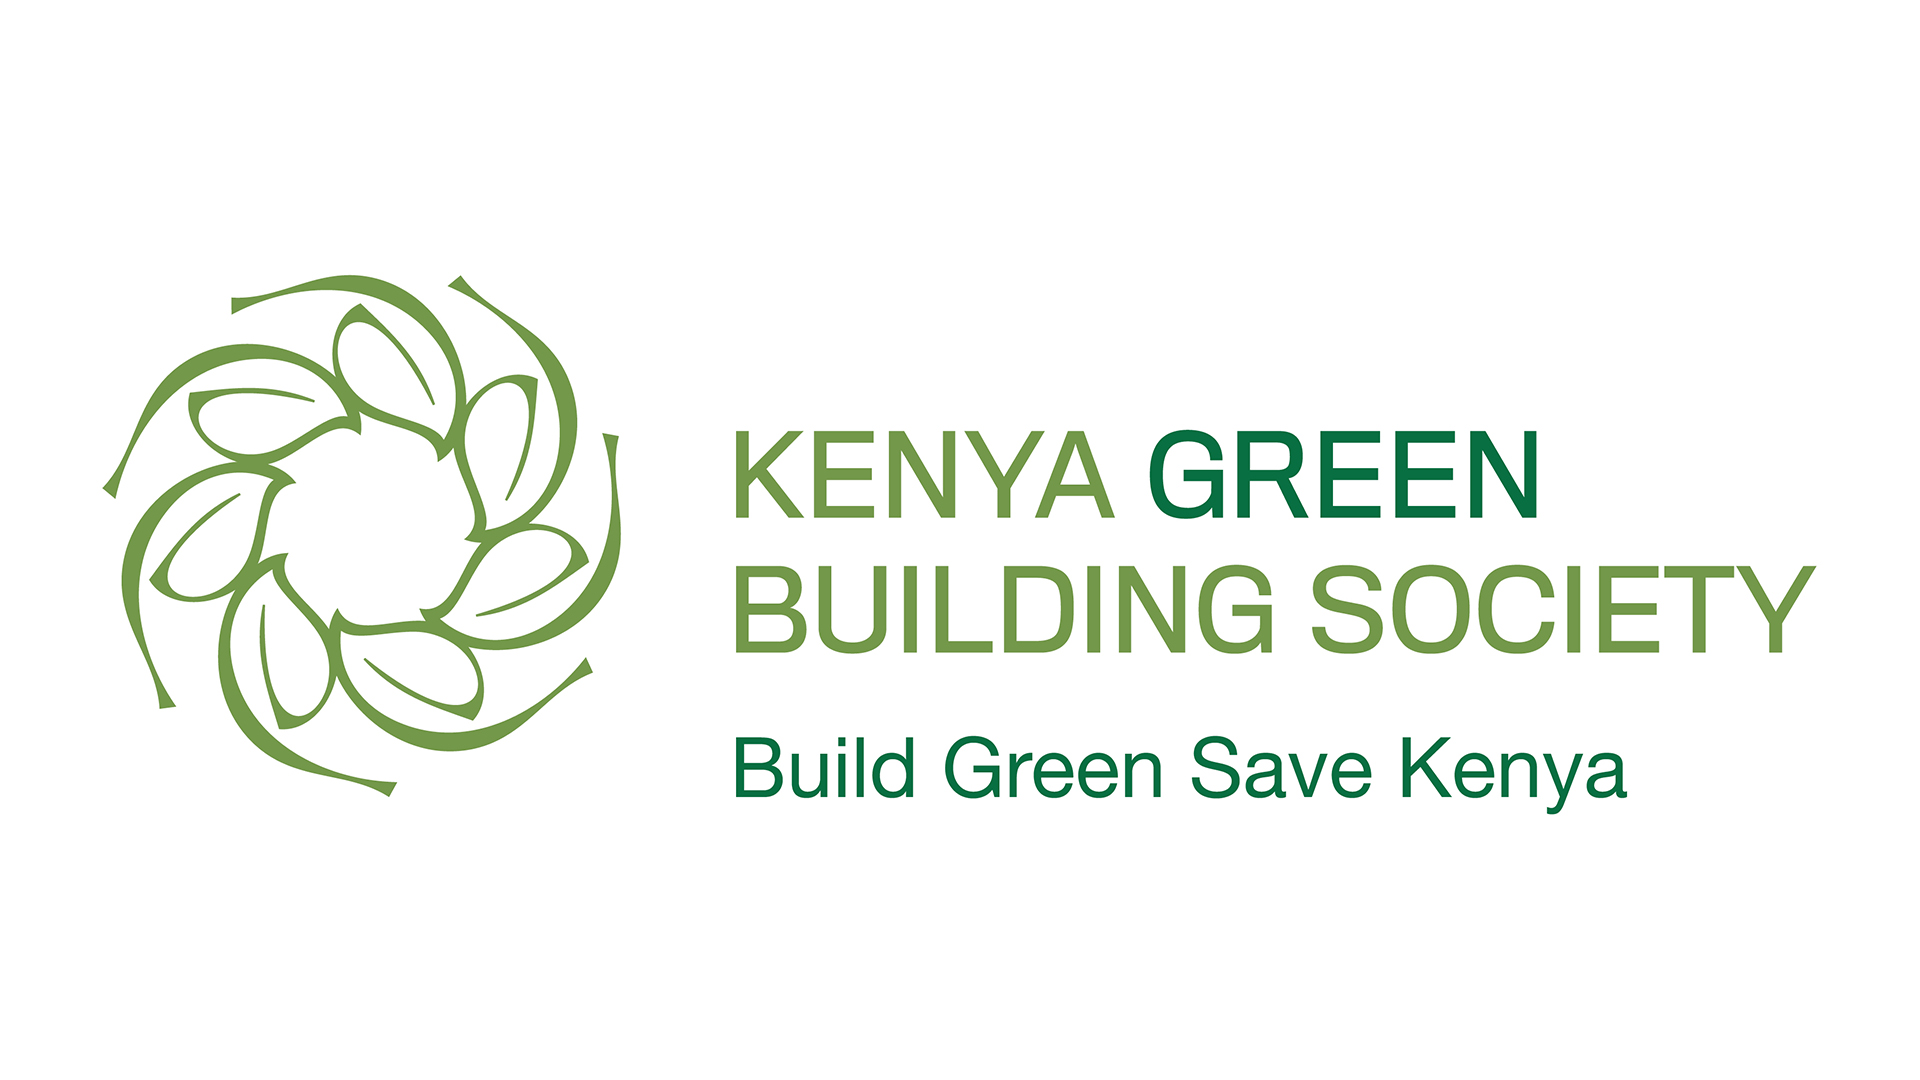 Kenya Green Building Society Automates Their Membership Management With Glue Up's All-in-One Membership Management Software